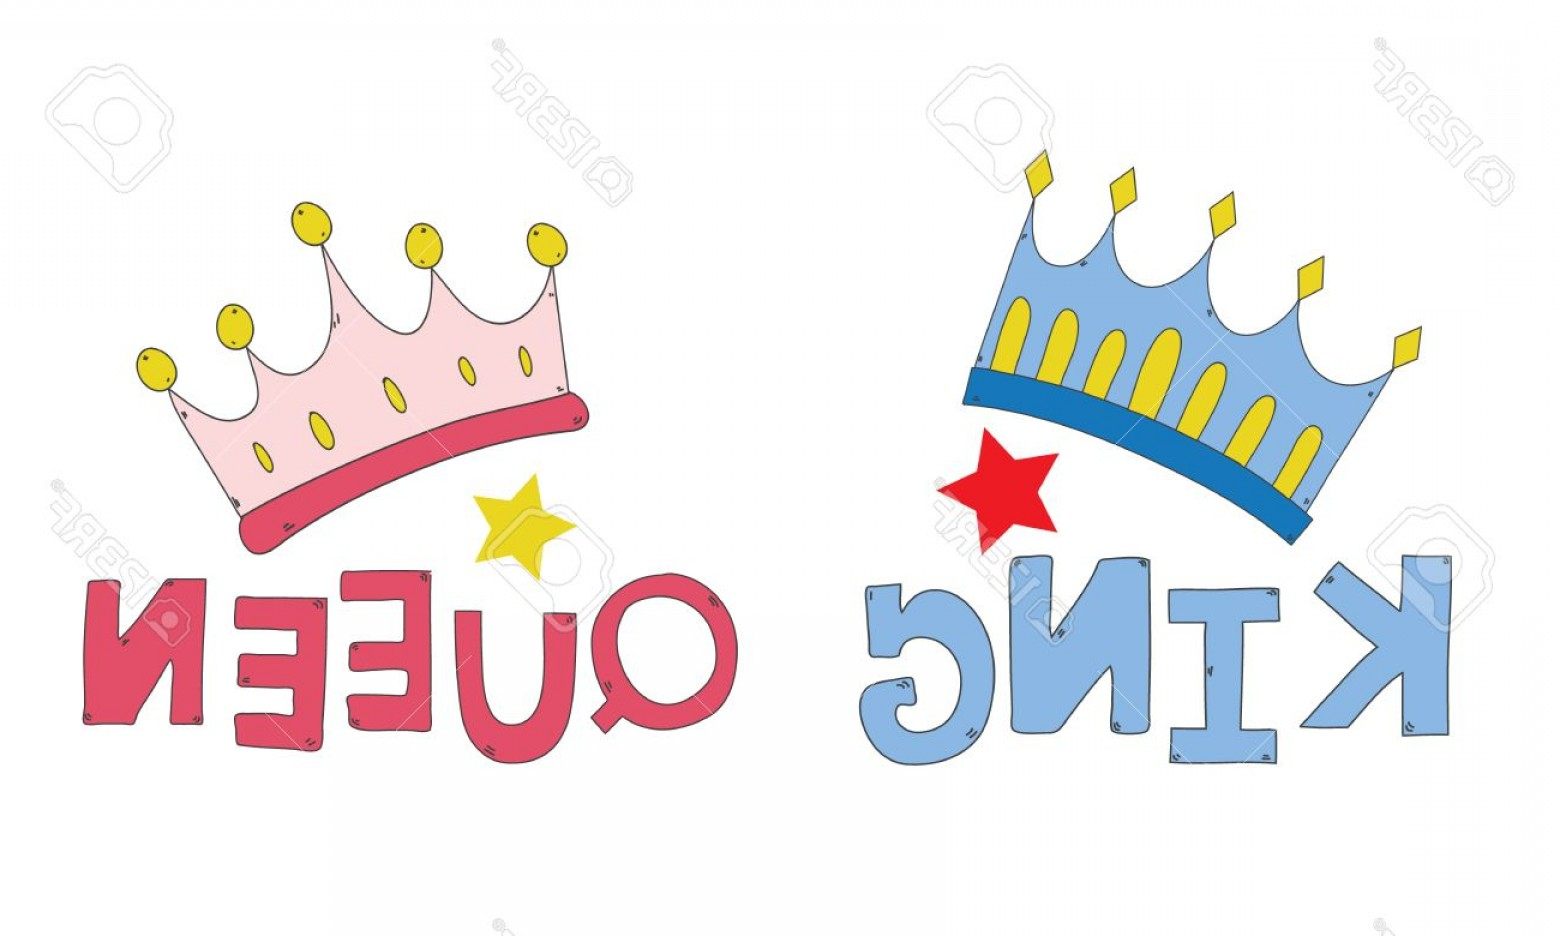 King And Queen Vector: Photostock Vector Couple Crown King And Queen Hand Drawn For T Shirt Couple Or Decorate Vector